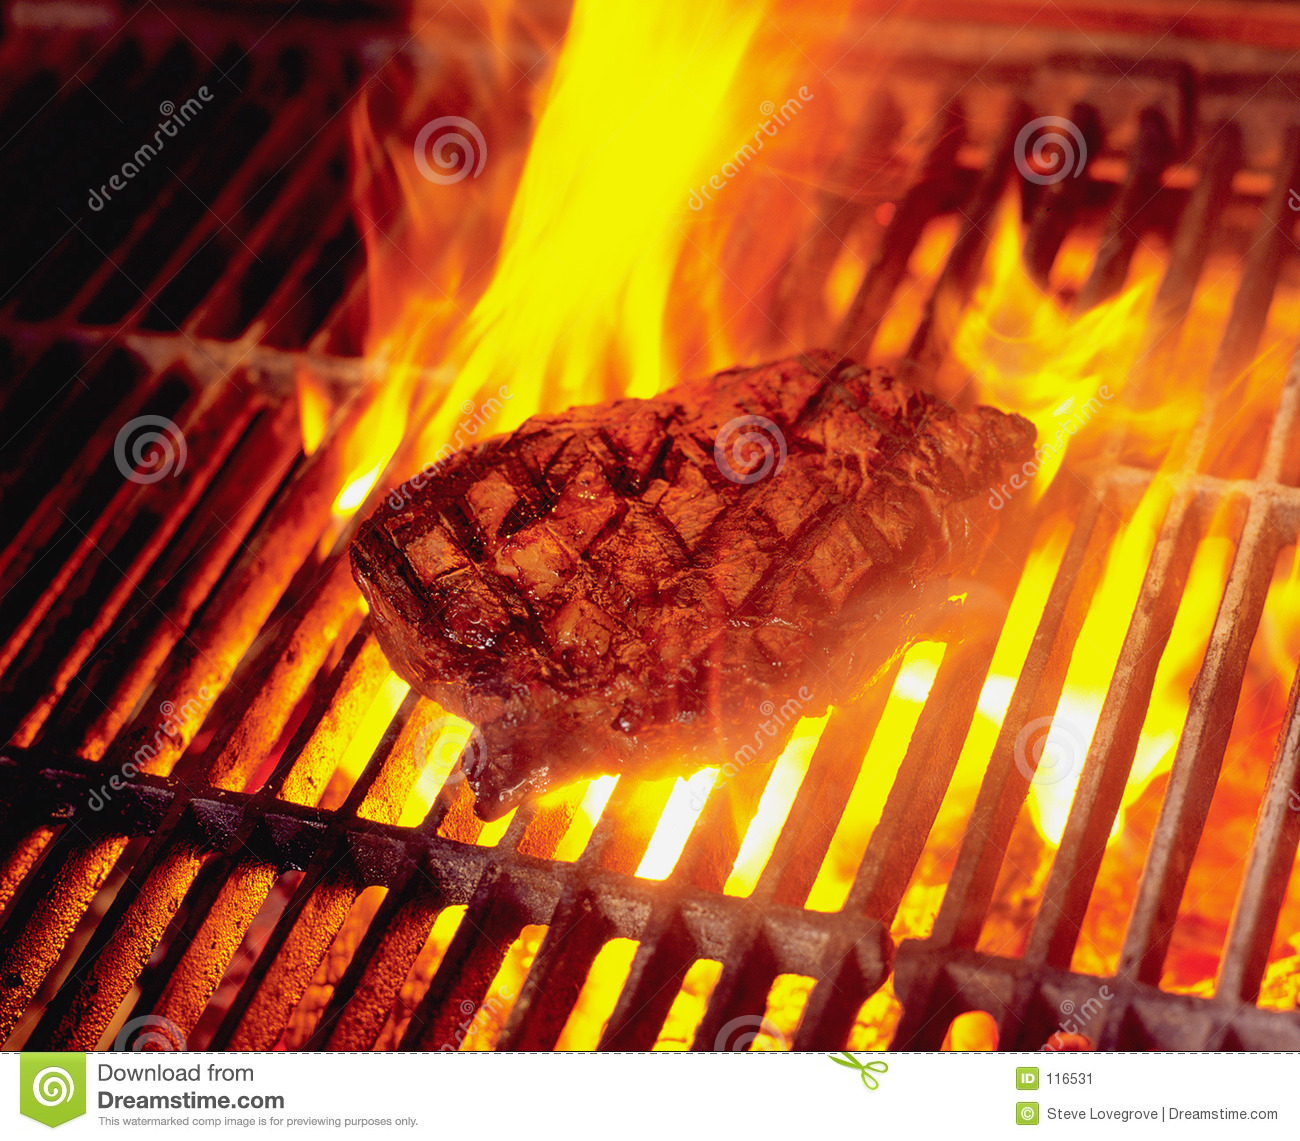 Flamme-Grill